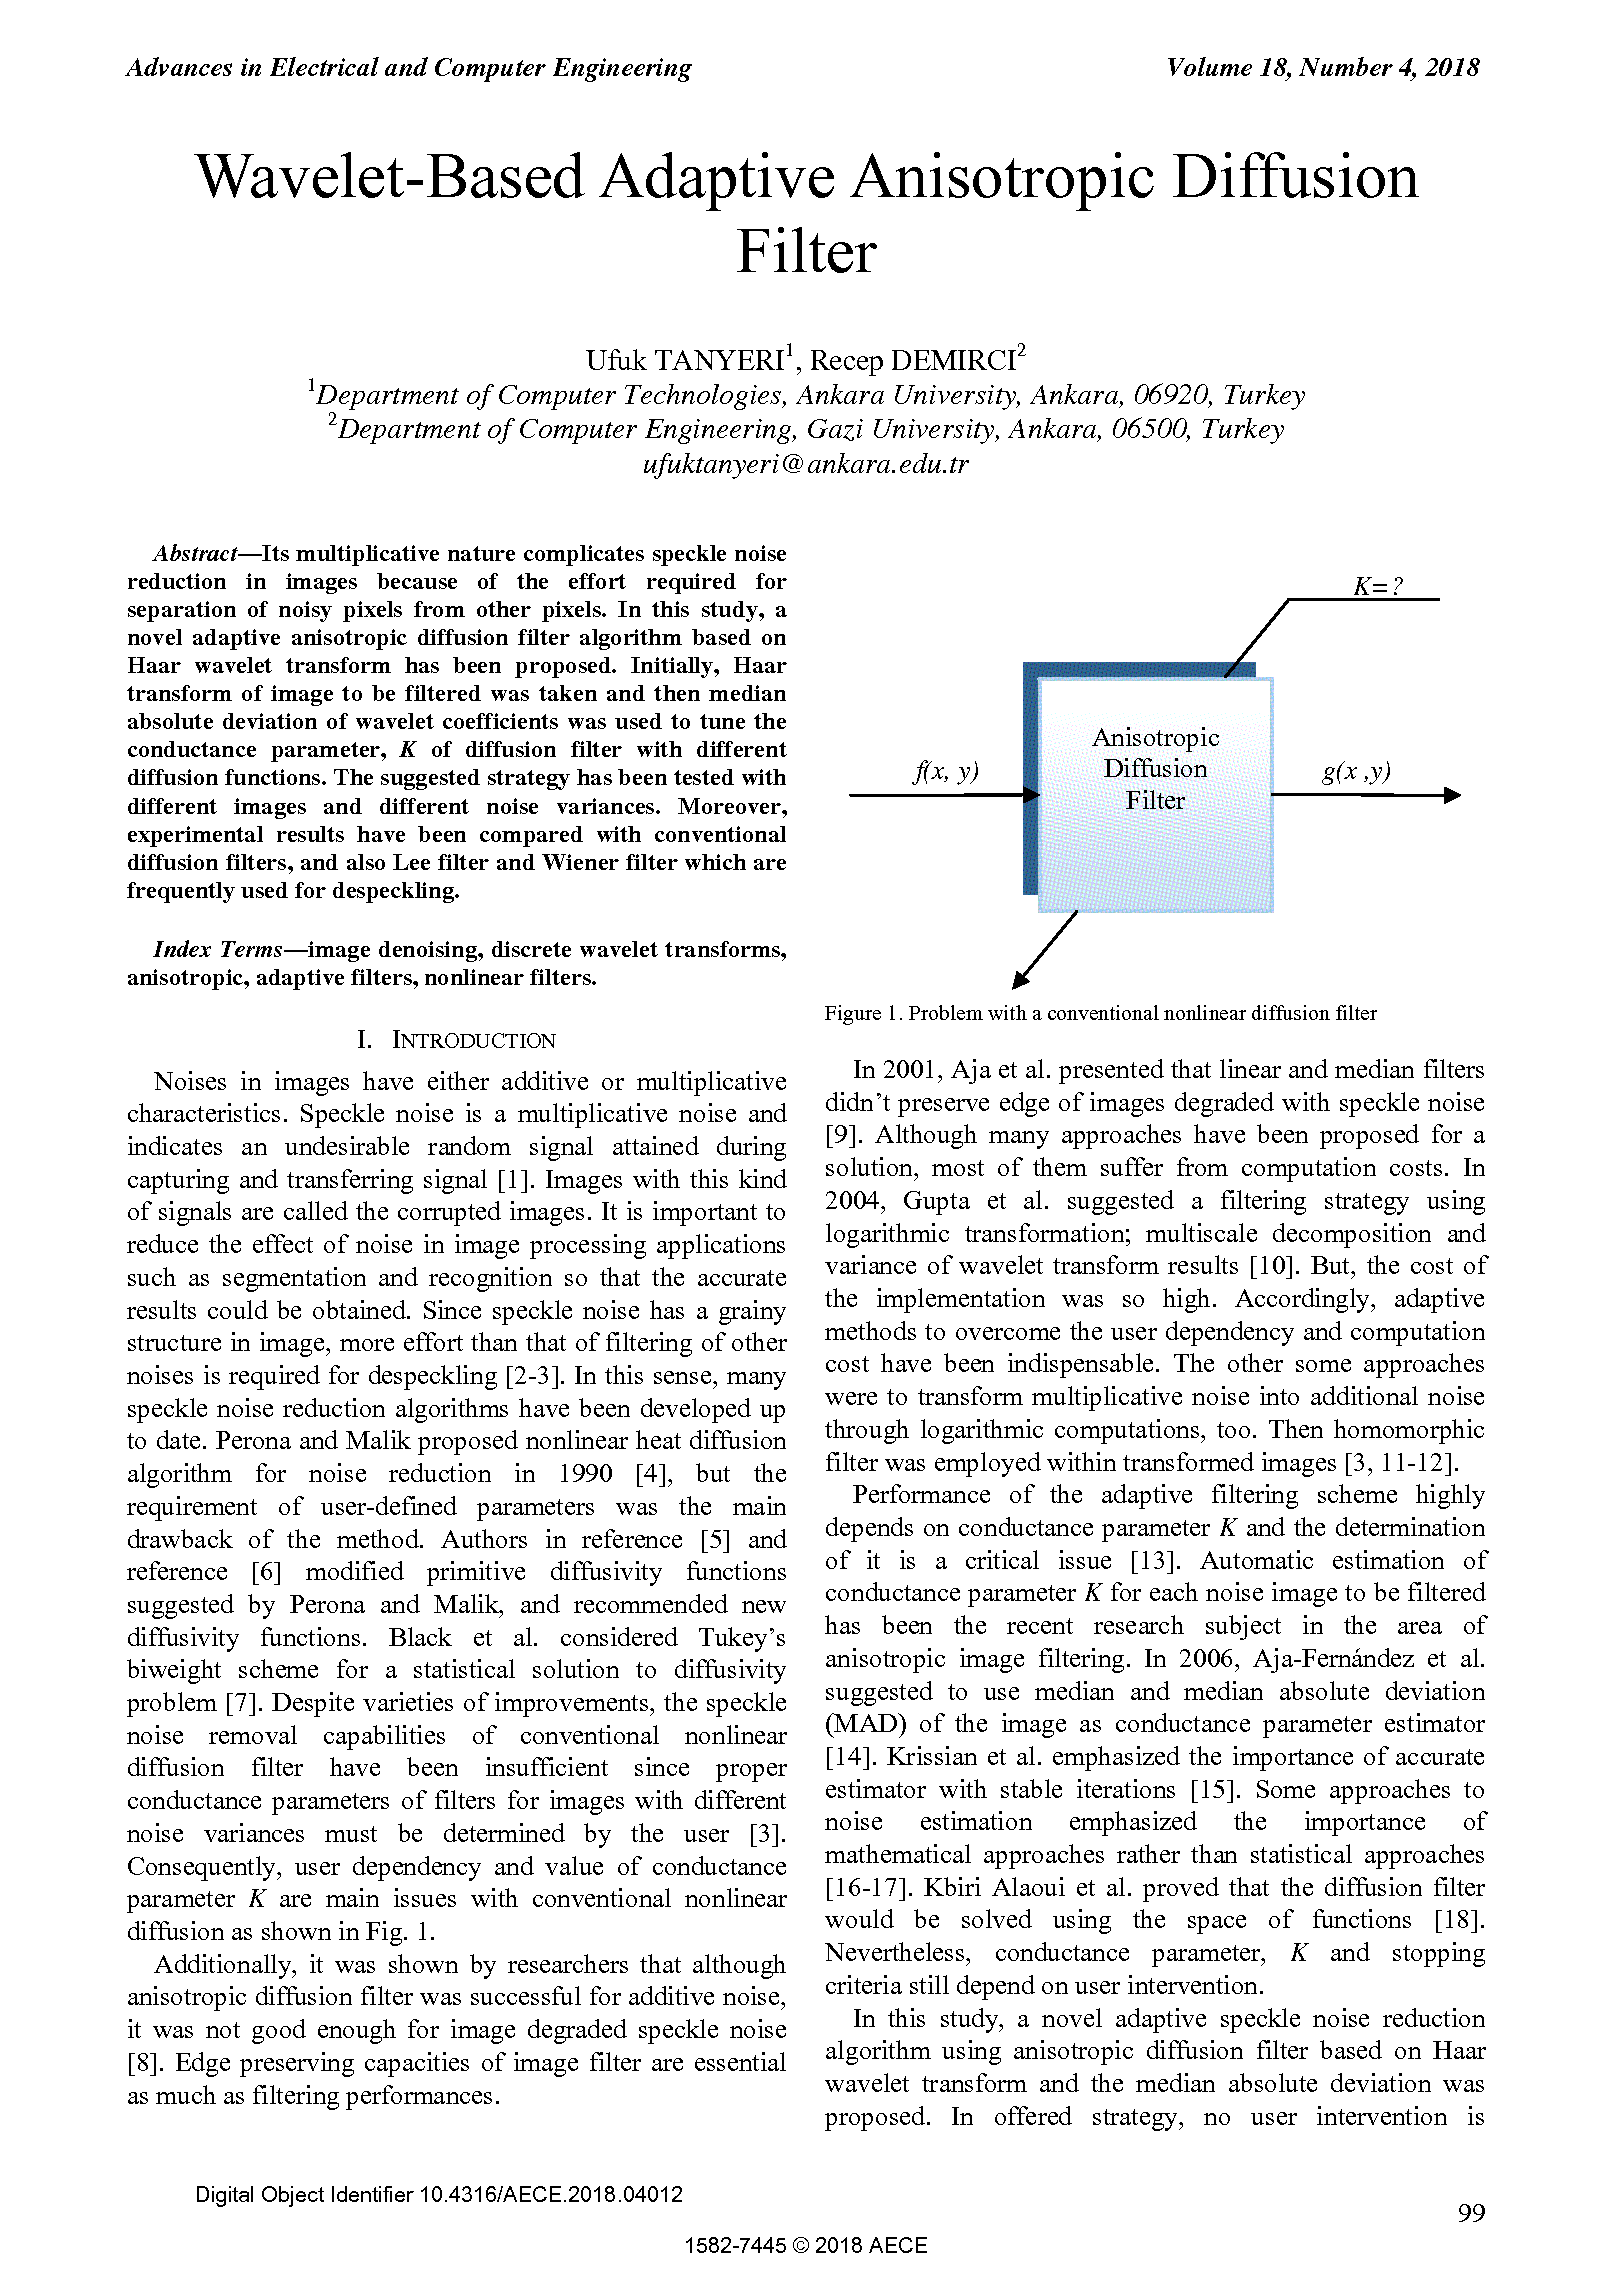 PDF Quickview for paper with DOI:10.4316/AECE.2018.04012